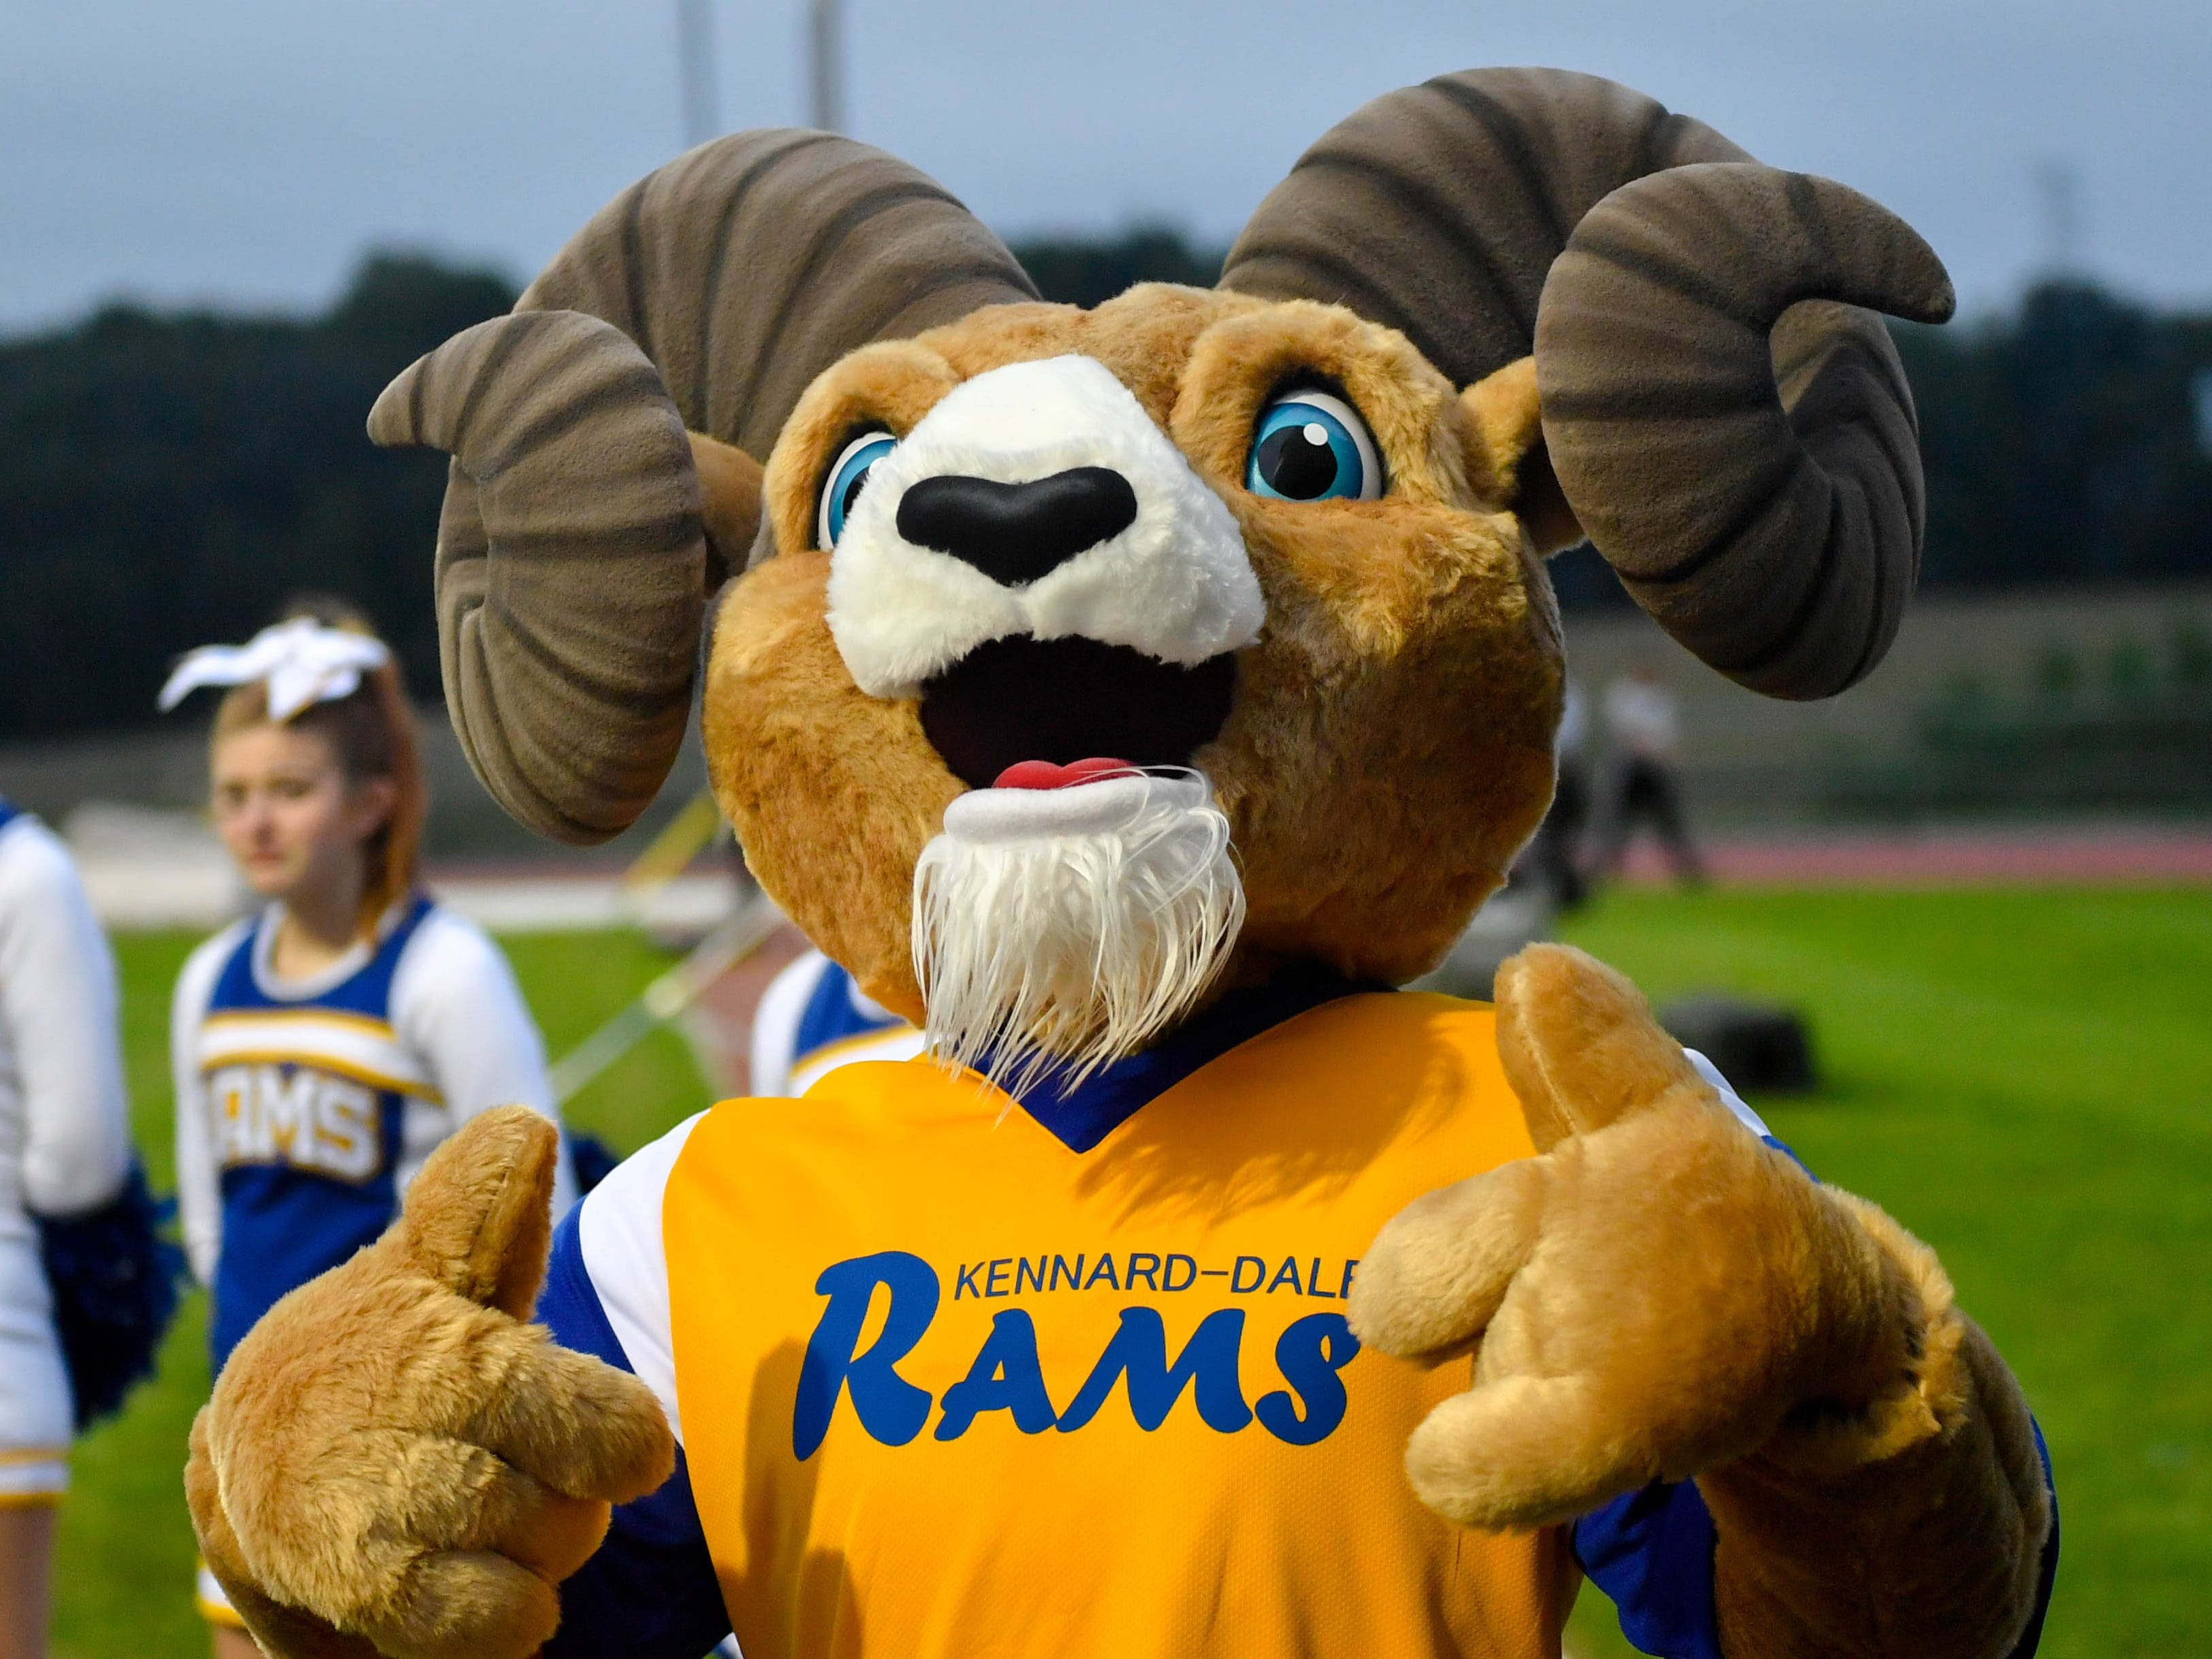 Kennard-Dale's mascot kept spirits high during their Division II football game against York Suburban, Friday, September 21, 2018. The York Suburban Trojans beat the Kennard-Dale Rams 31-25.